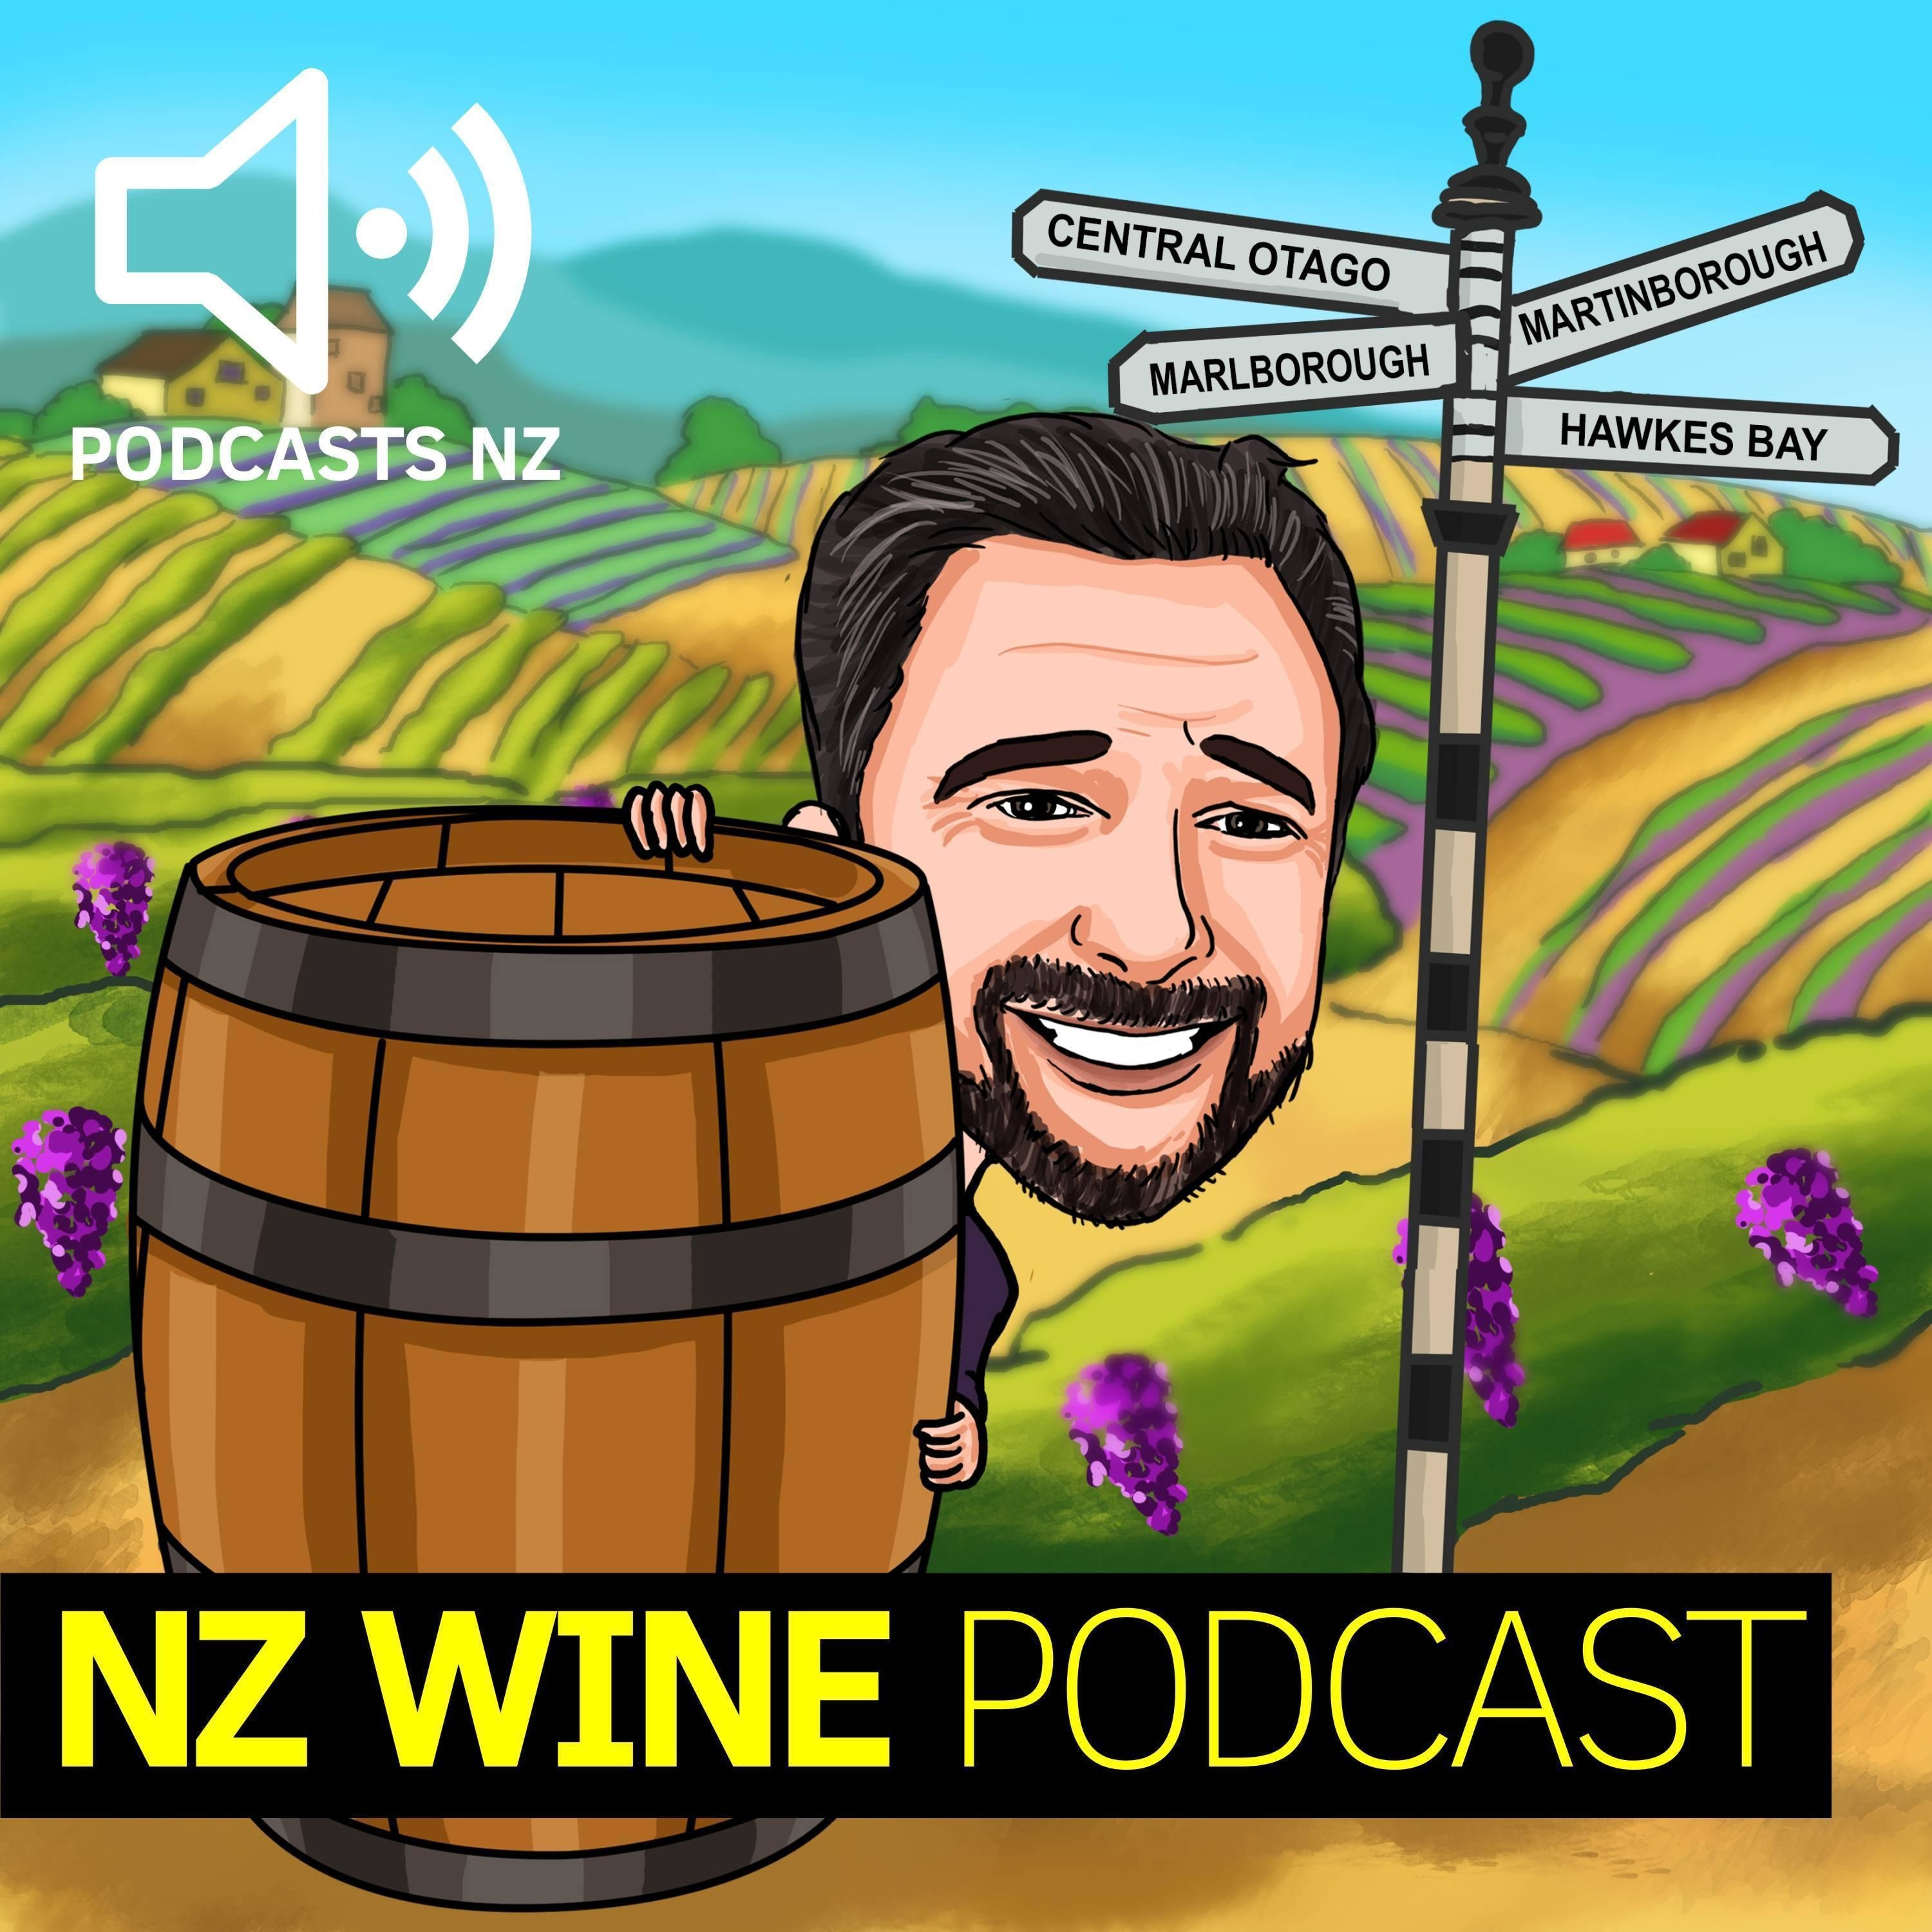 NZ Wine Podcast 48: Suzanne Kendrick - Wine-Searcher.com